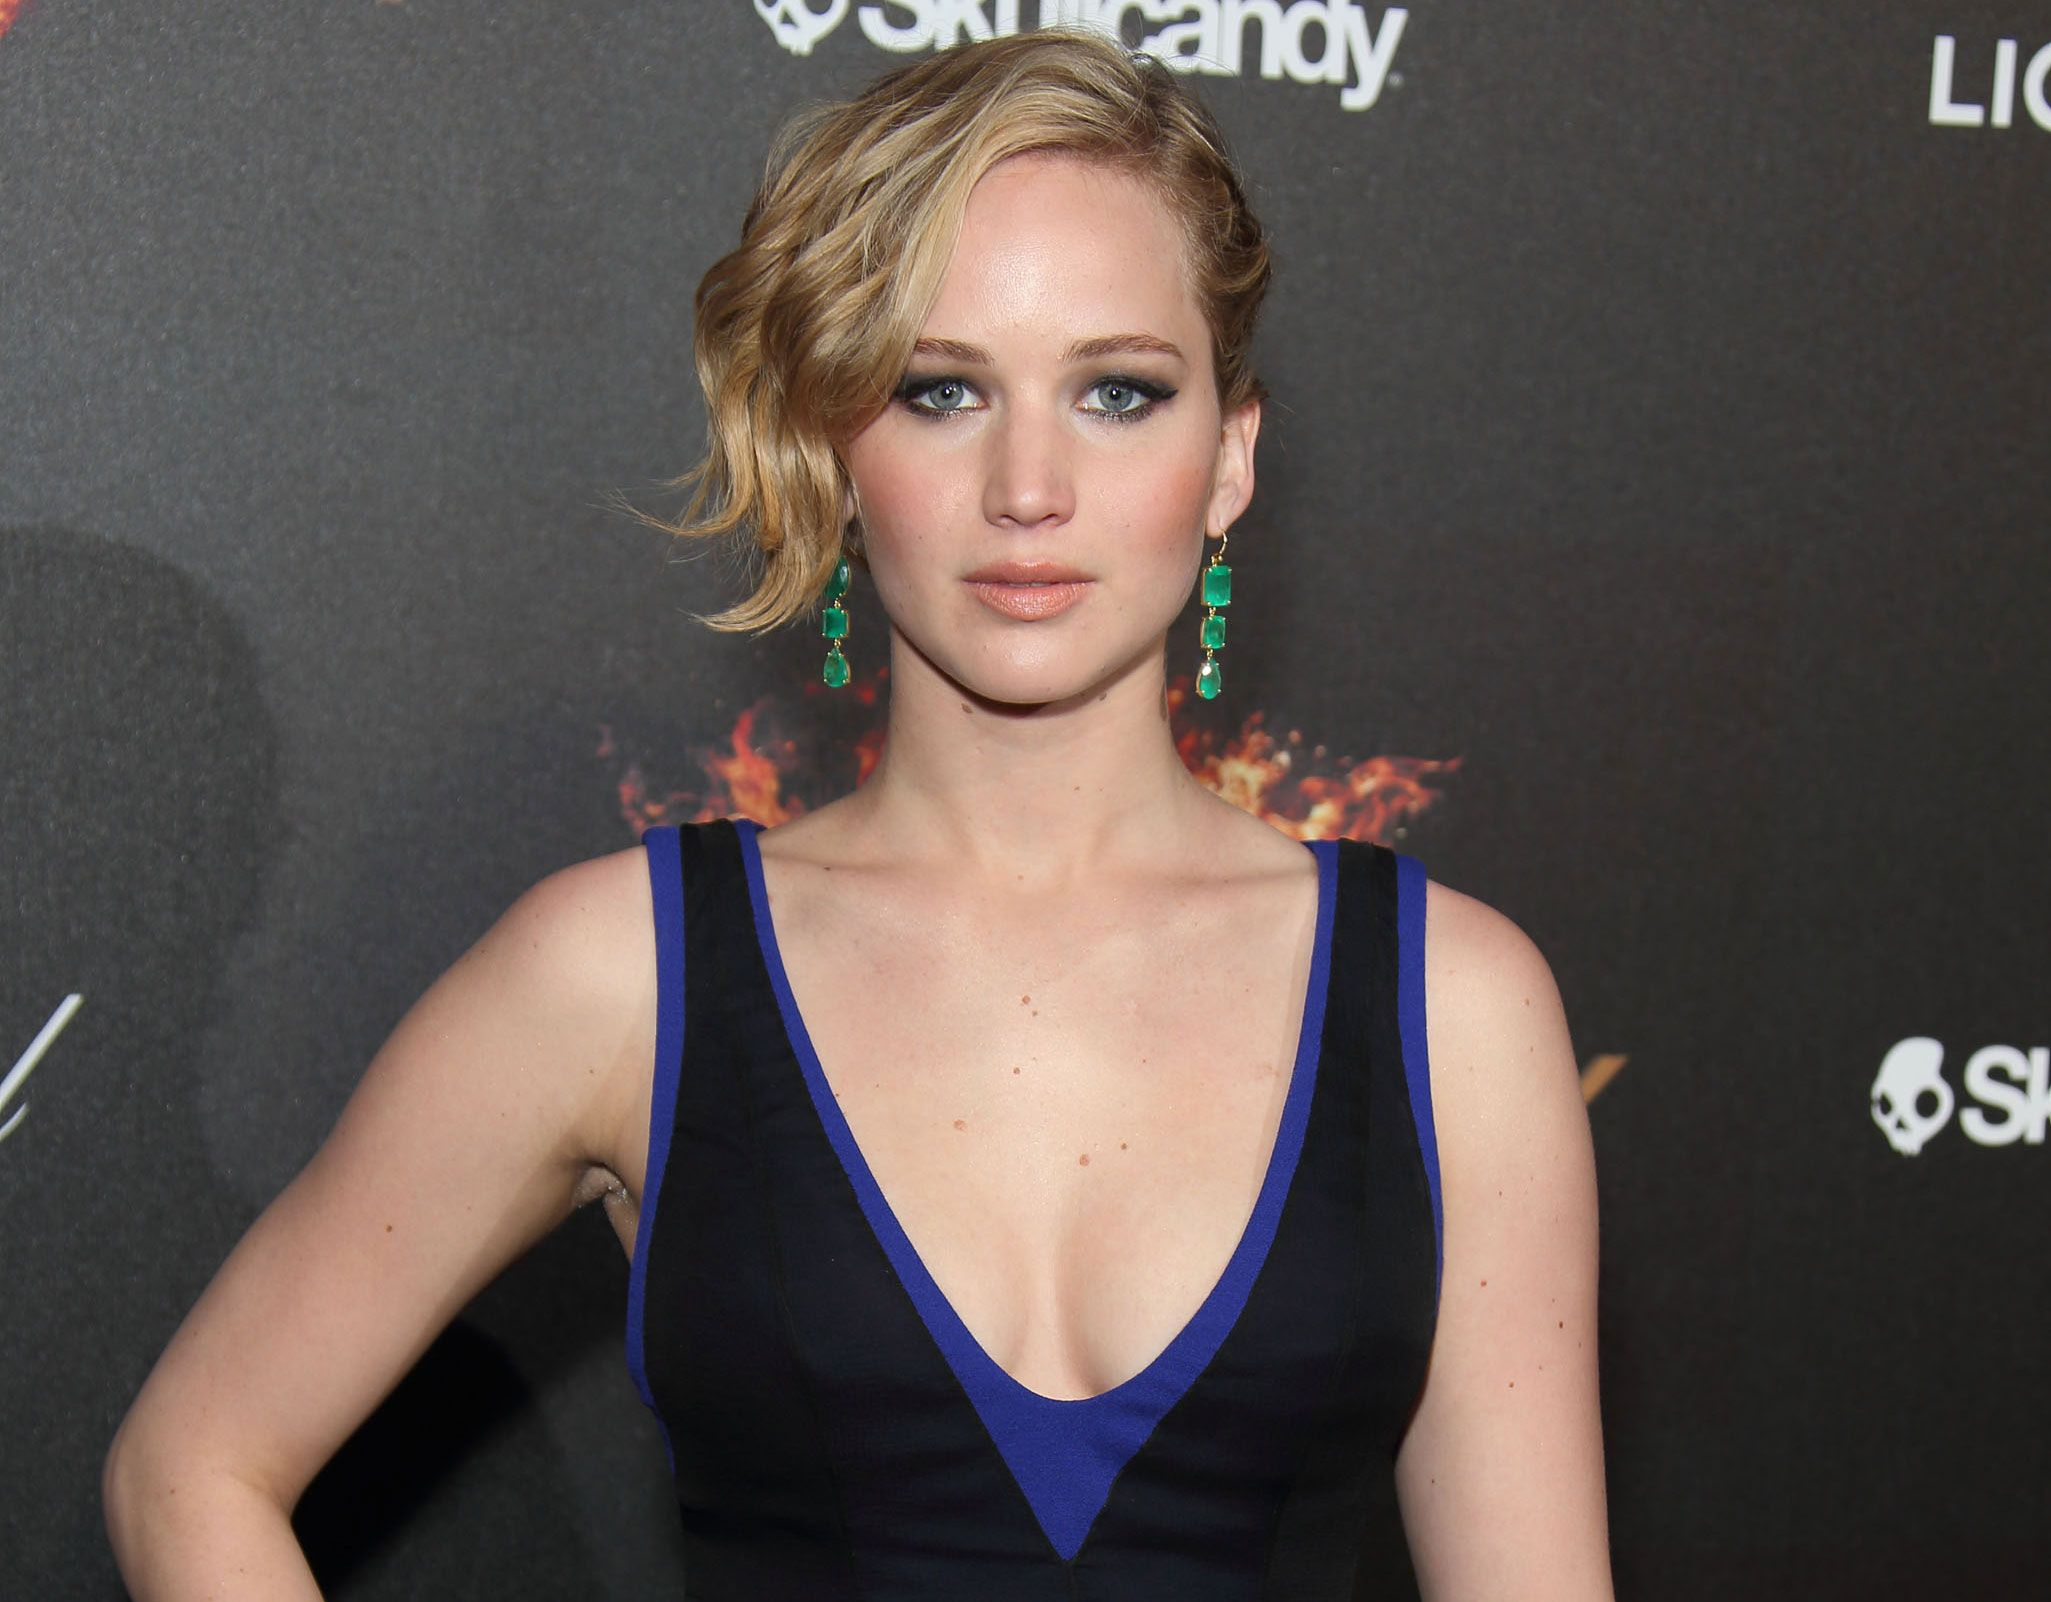 Jennifer Lawrence's Wikipedia page trolled with nude photos